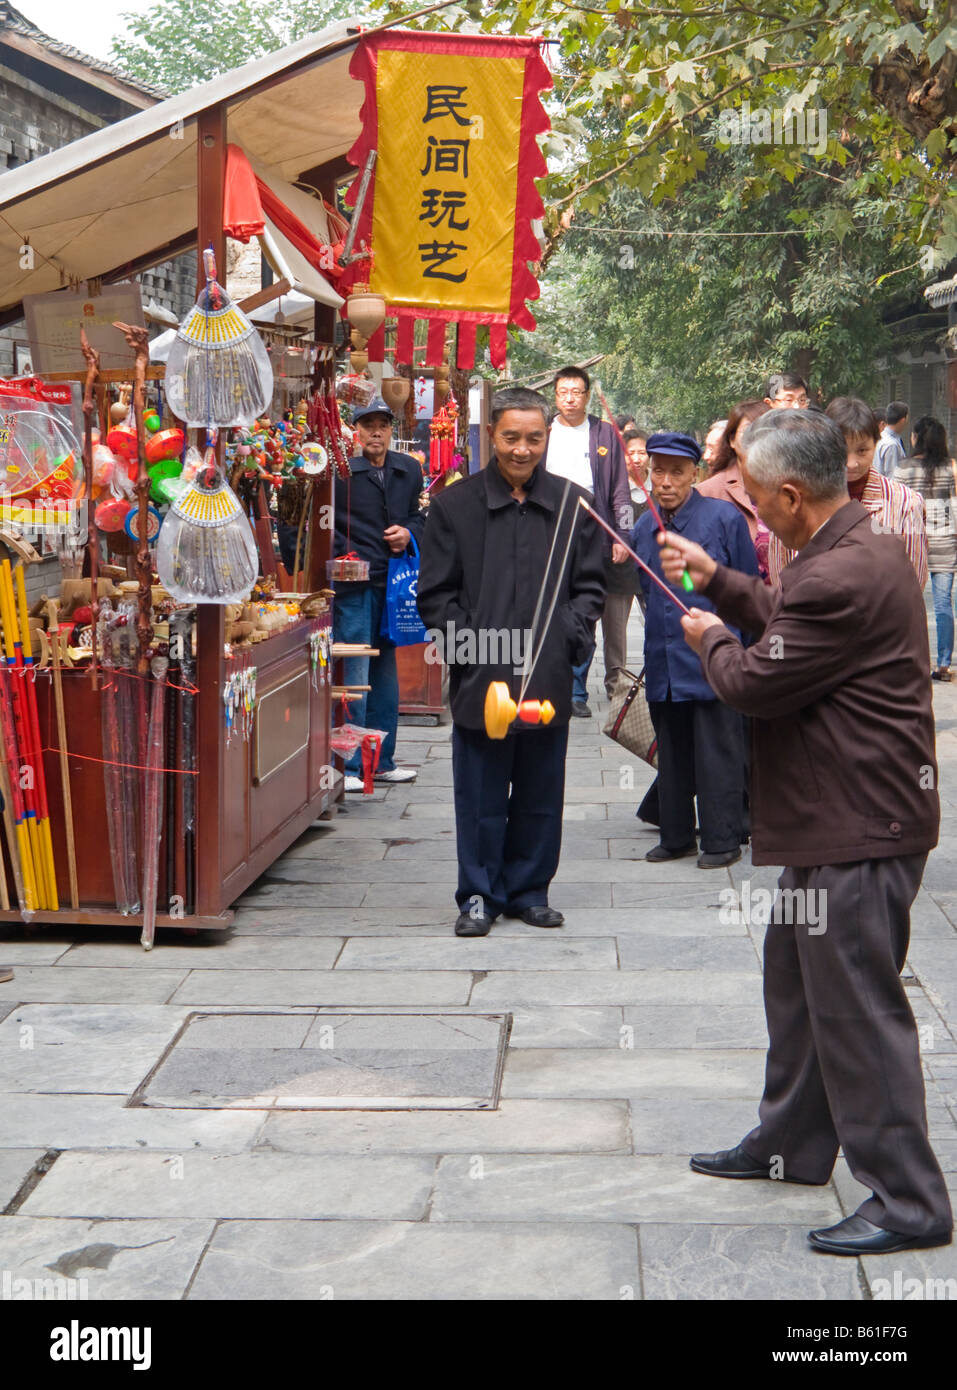 Market Stalls and Street Life in the Hutong Chengdu China - Stock Image